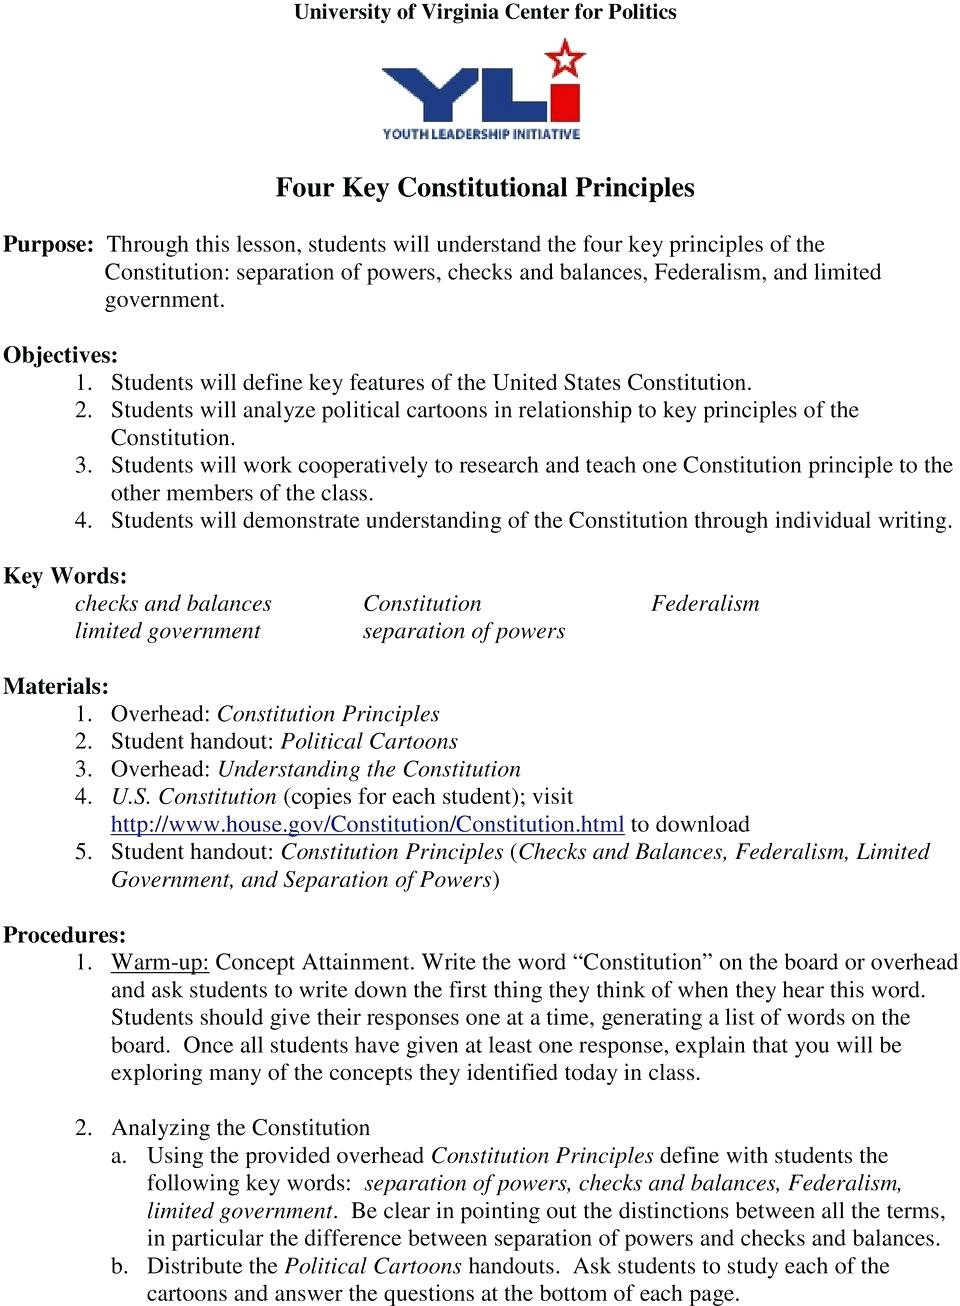 Checks and Balances Worksheet Answers Fresh the Constitution Worksheet